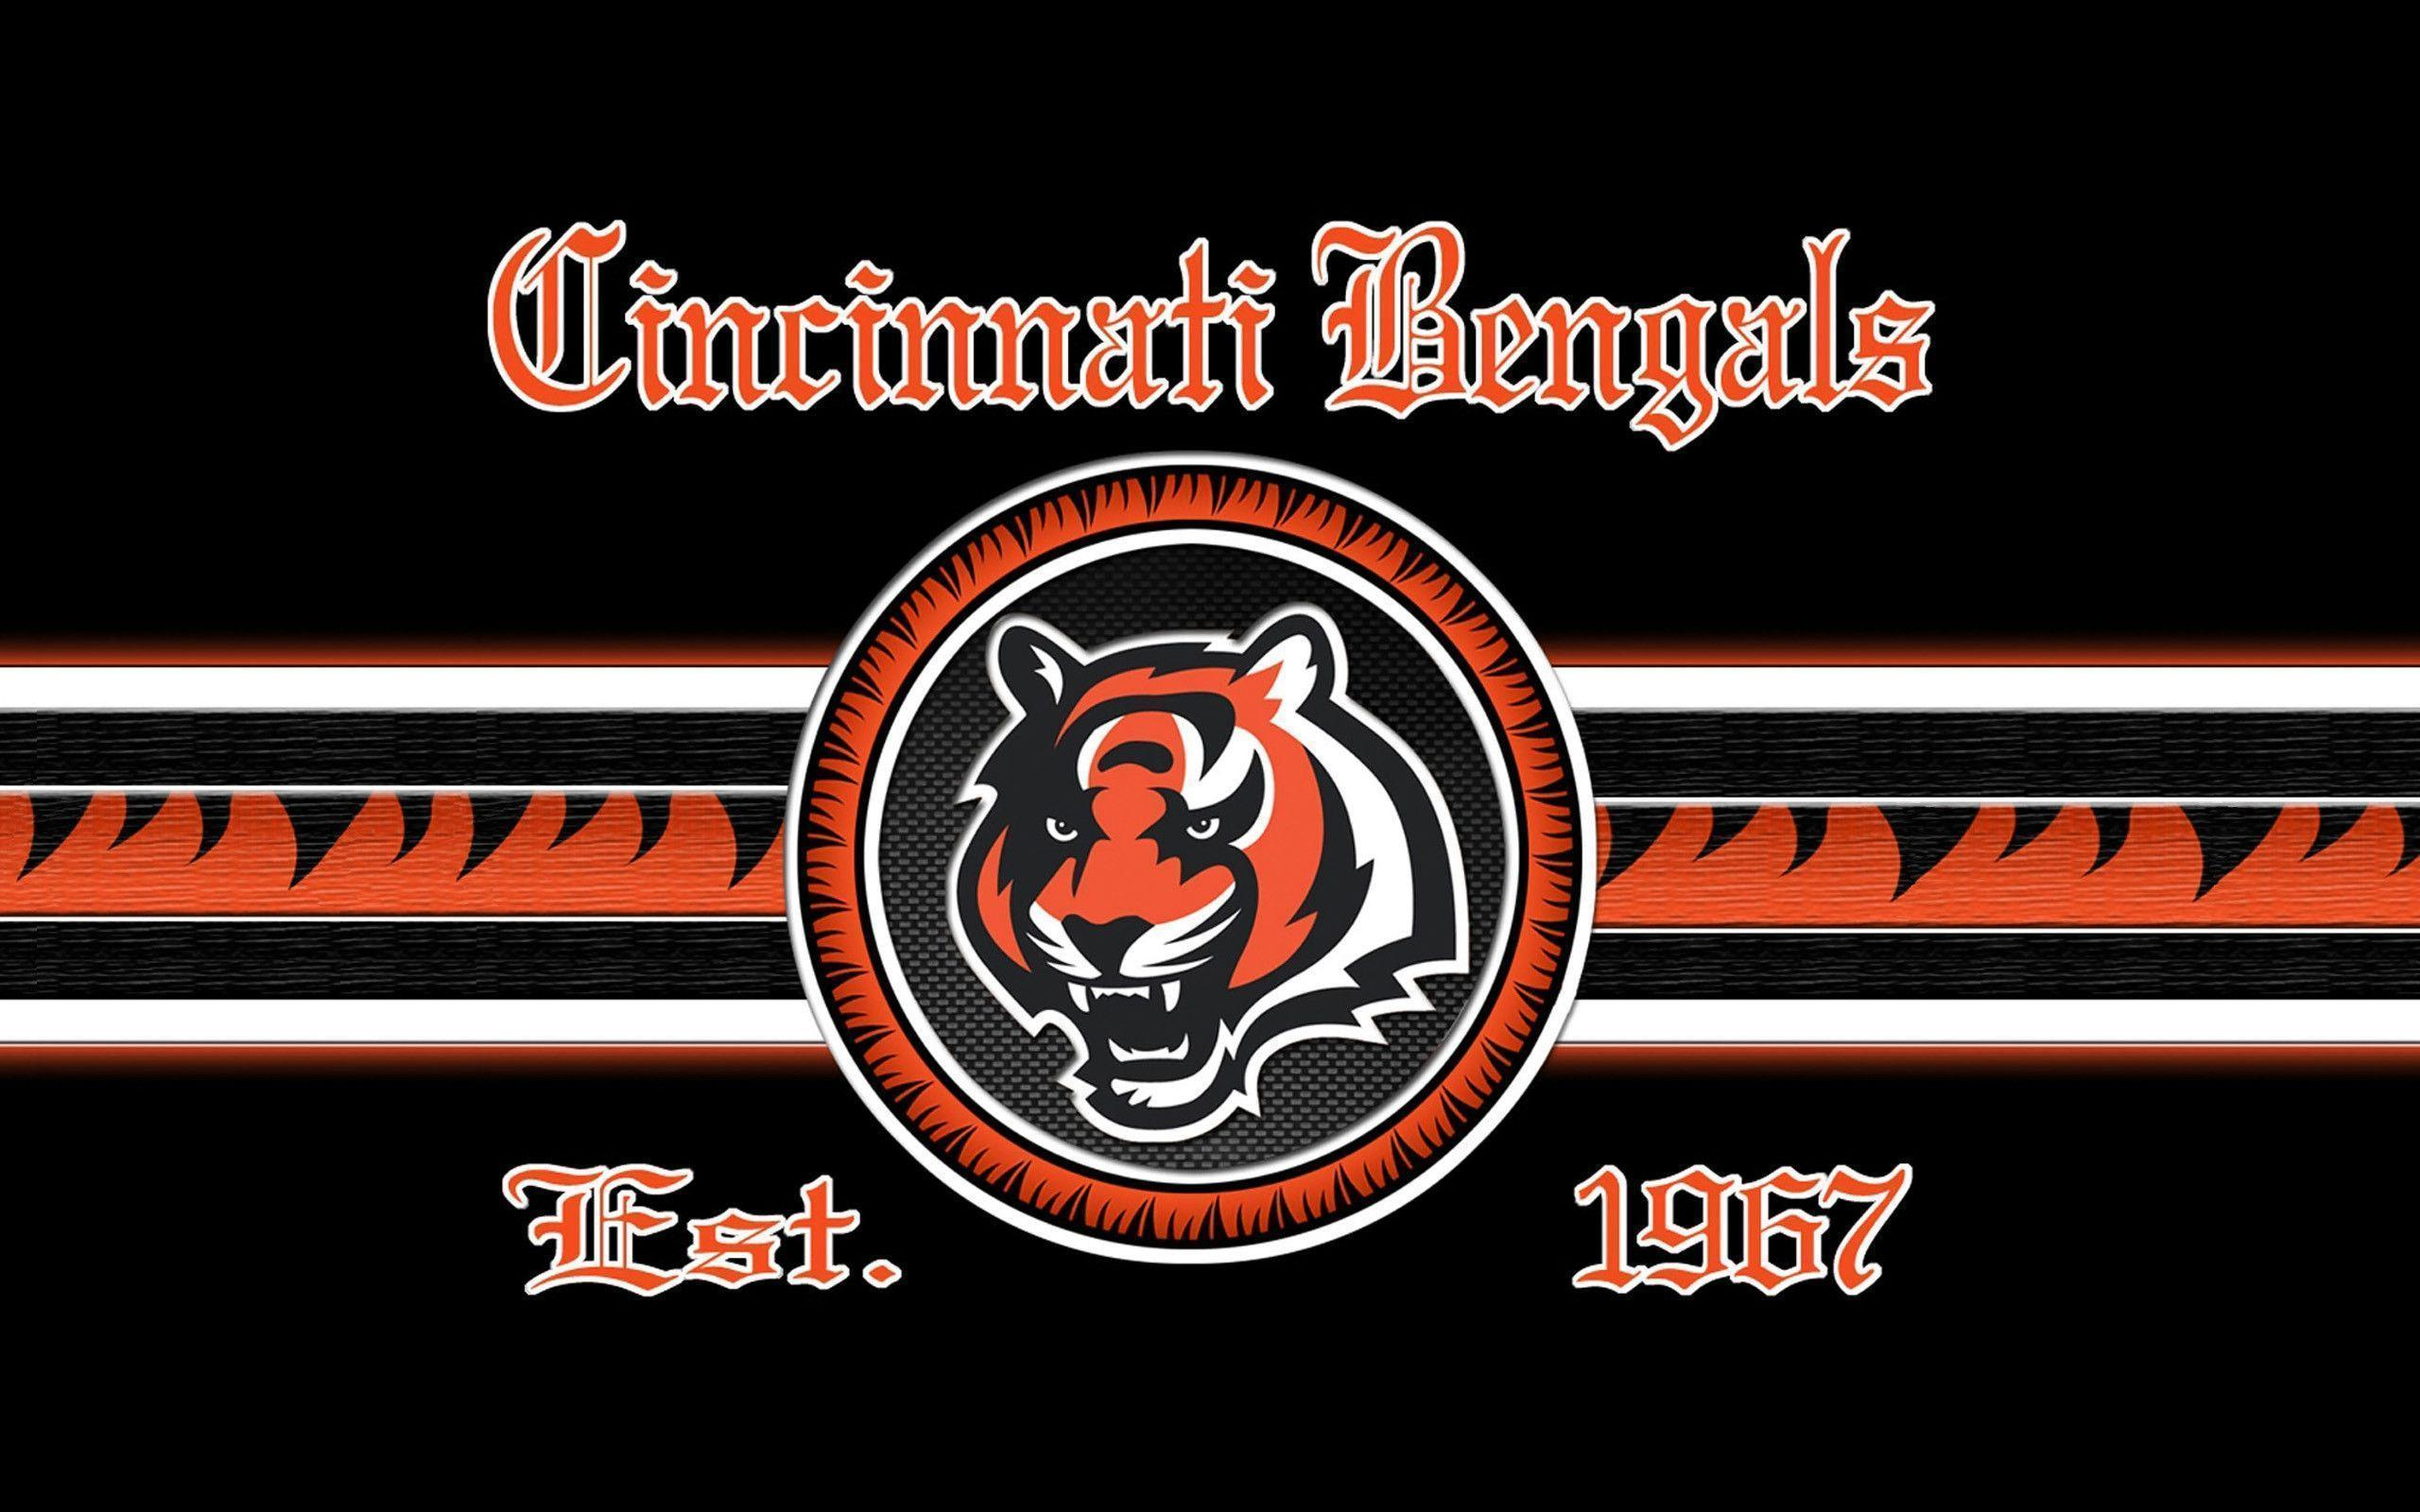 Cincinnati Bengals Wallpaper | Large HD Wallpaper Database